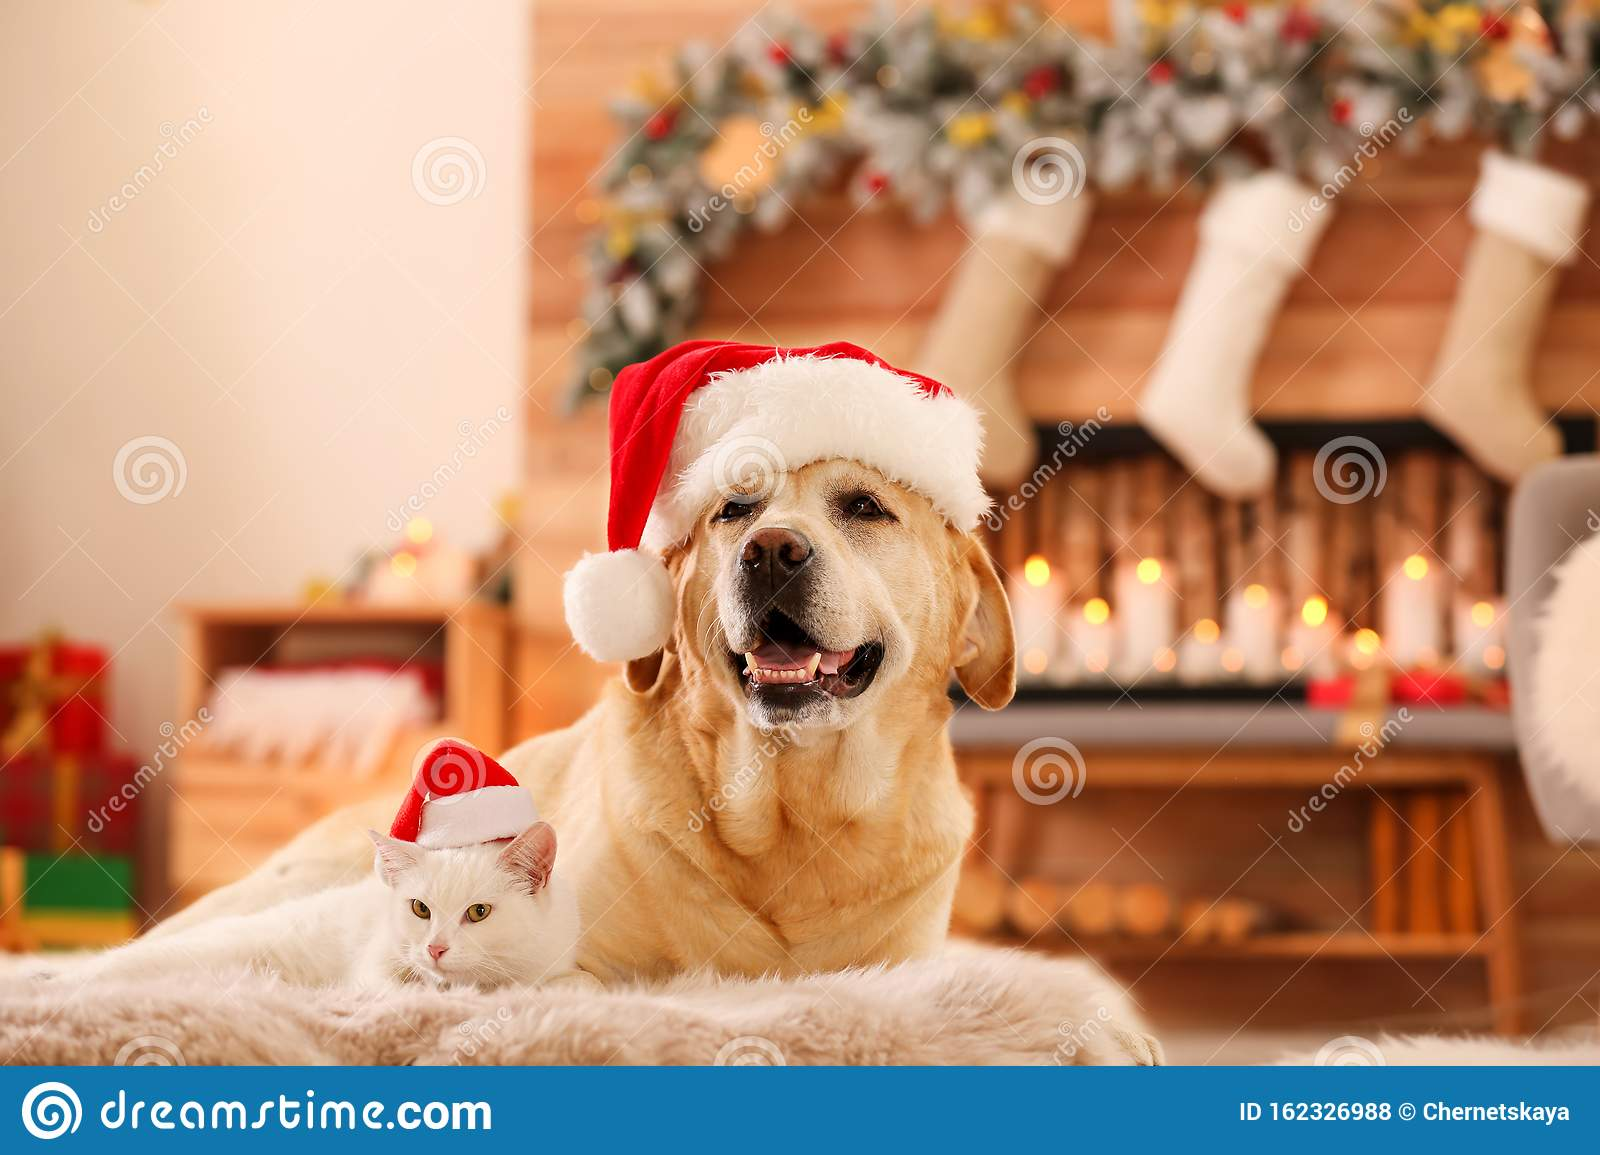 Adorable Dog And Cat Wearing Santa Hats Together At Room Decorated For Christmas Stock Photo Image Of Canine Holiday 162326988